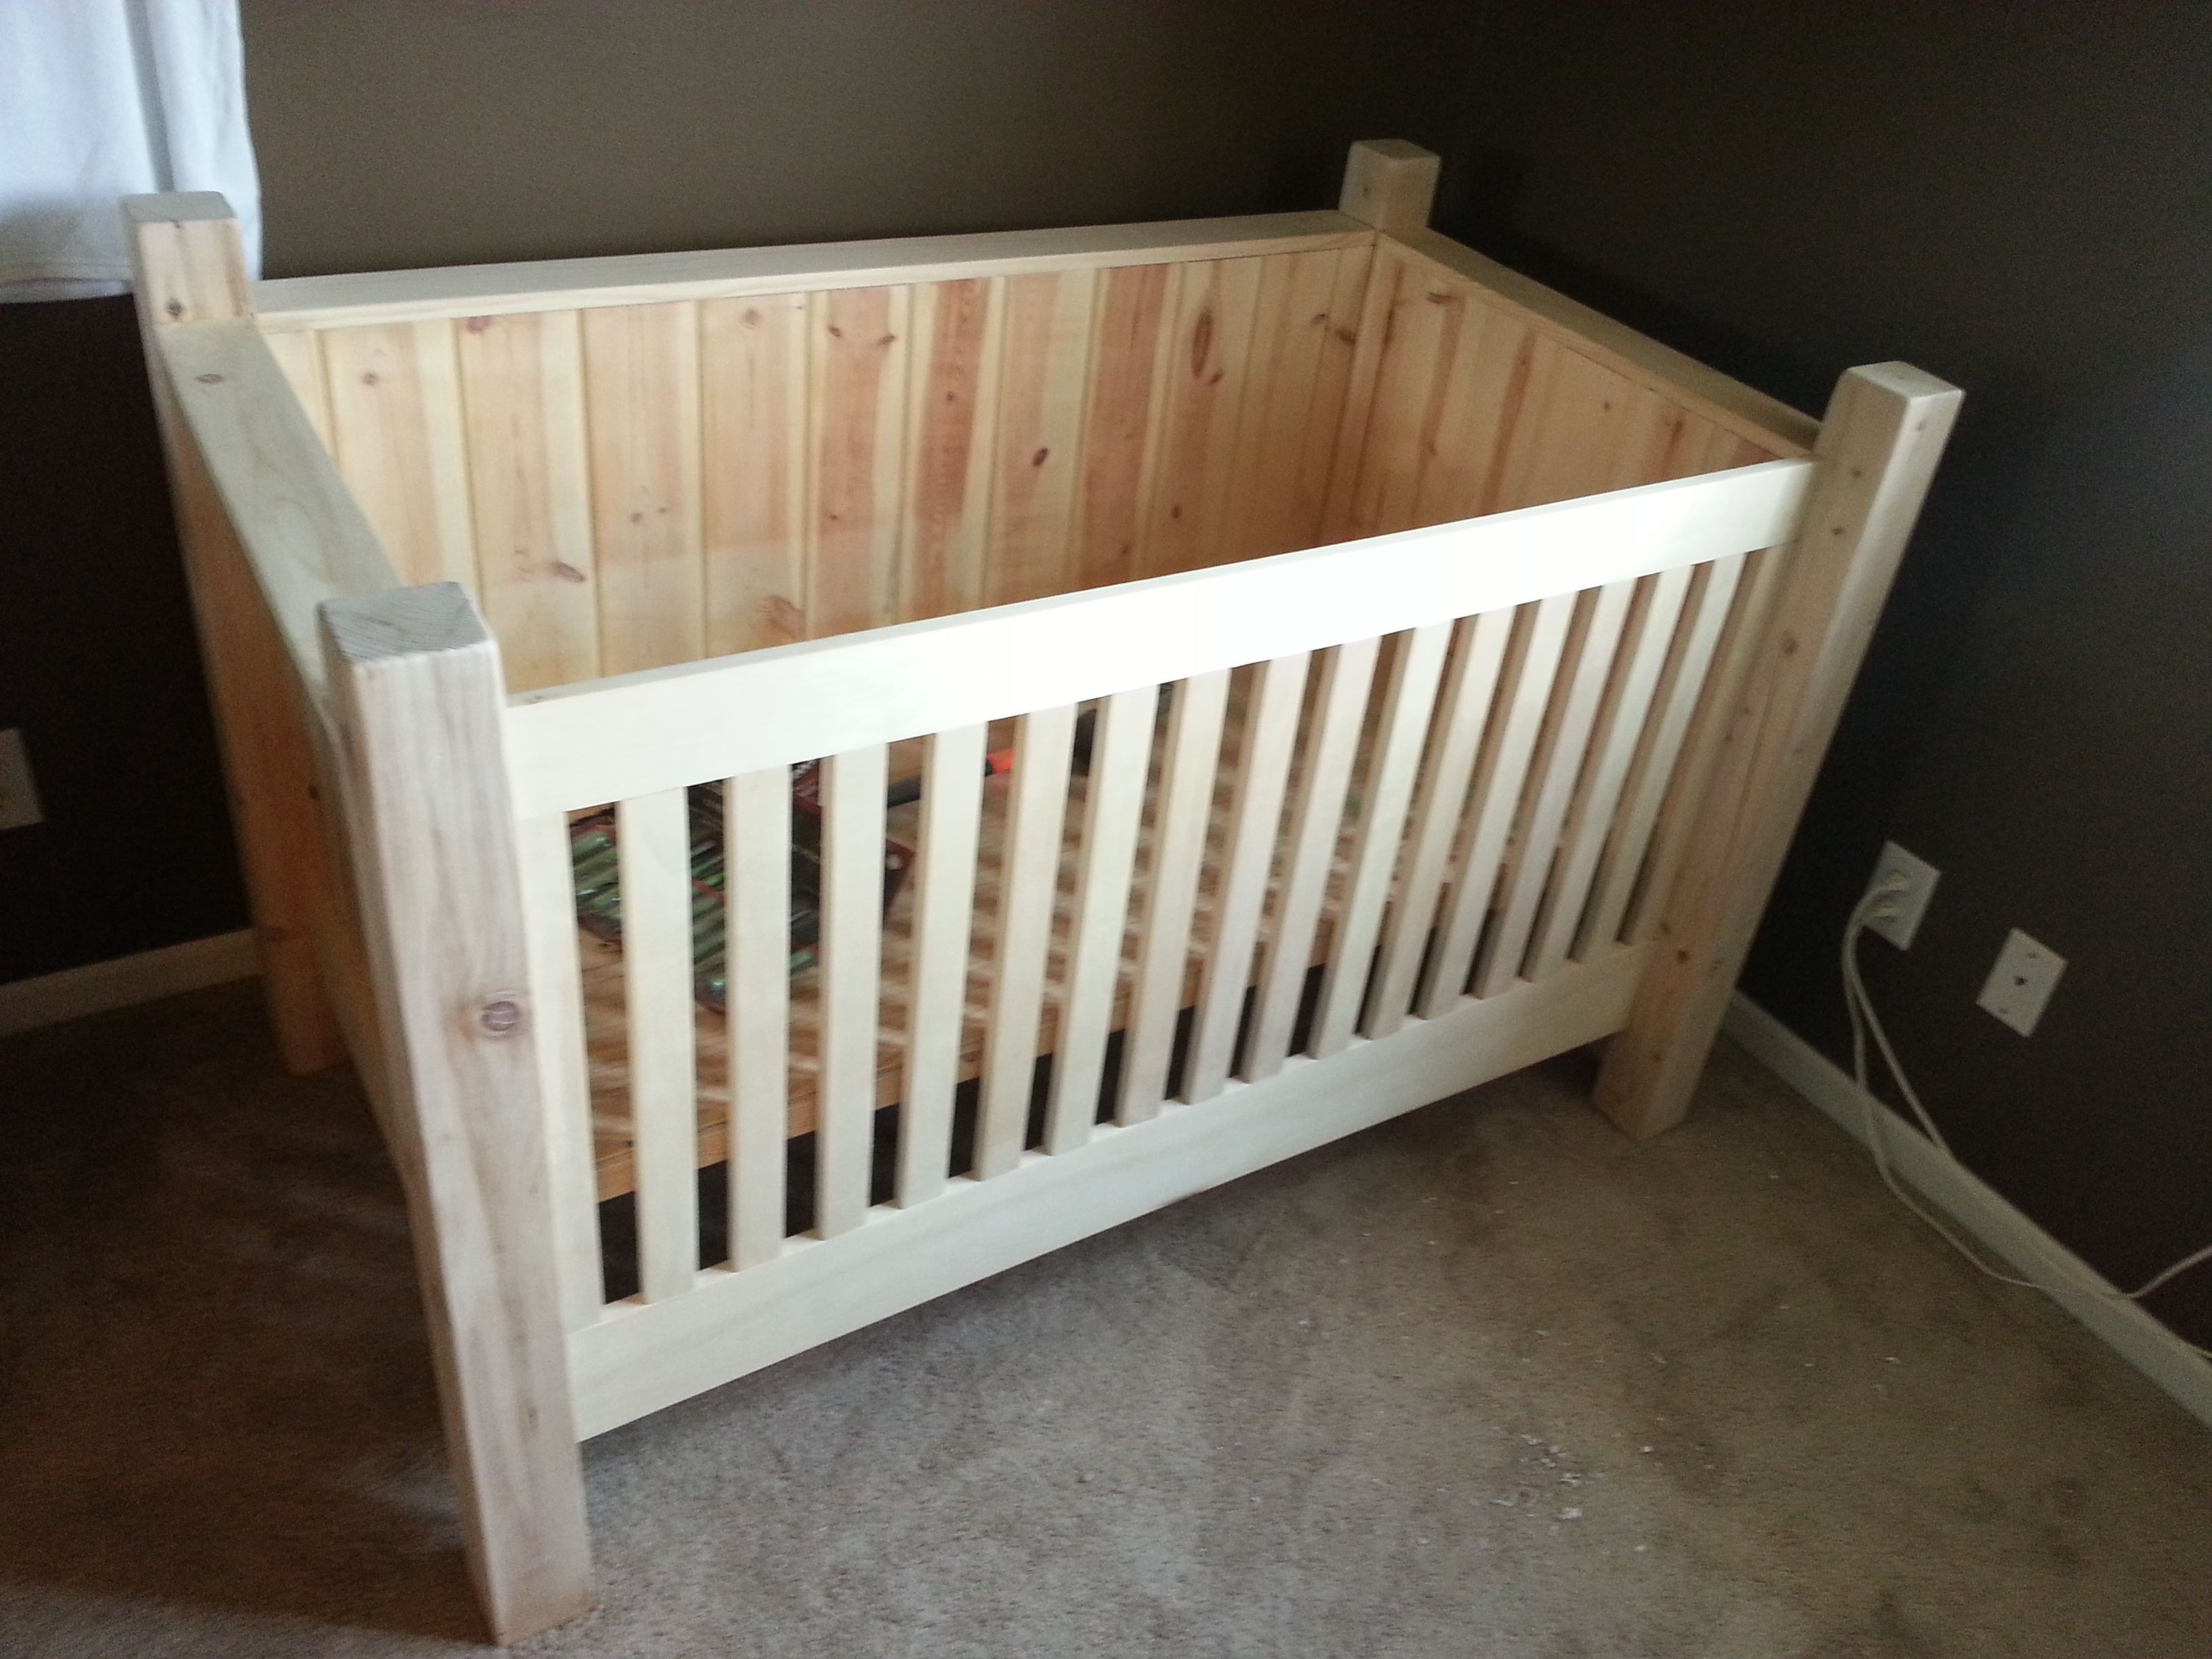 Best ideas about DIY Baby Bed . Save or Pin DIY Wood Crib This is another option if doing all tree Now.